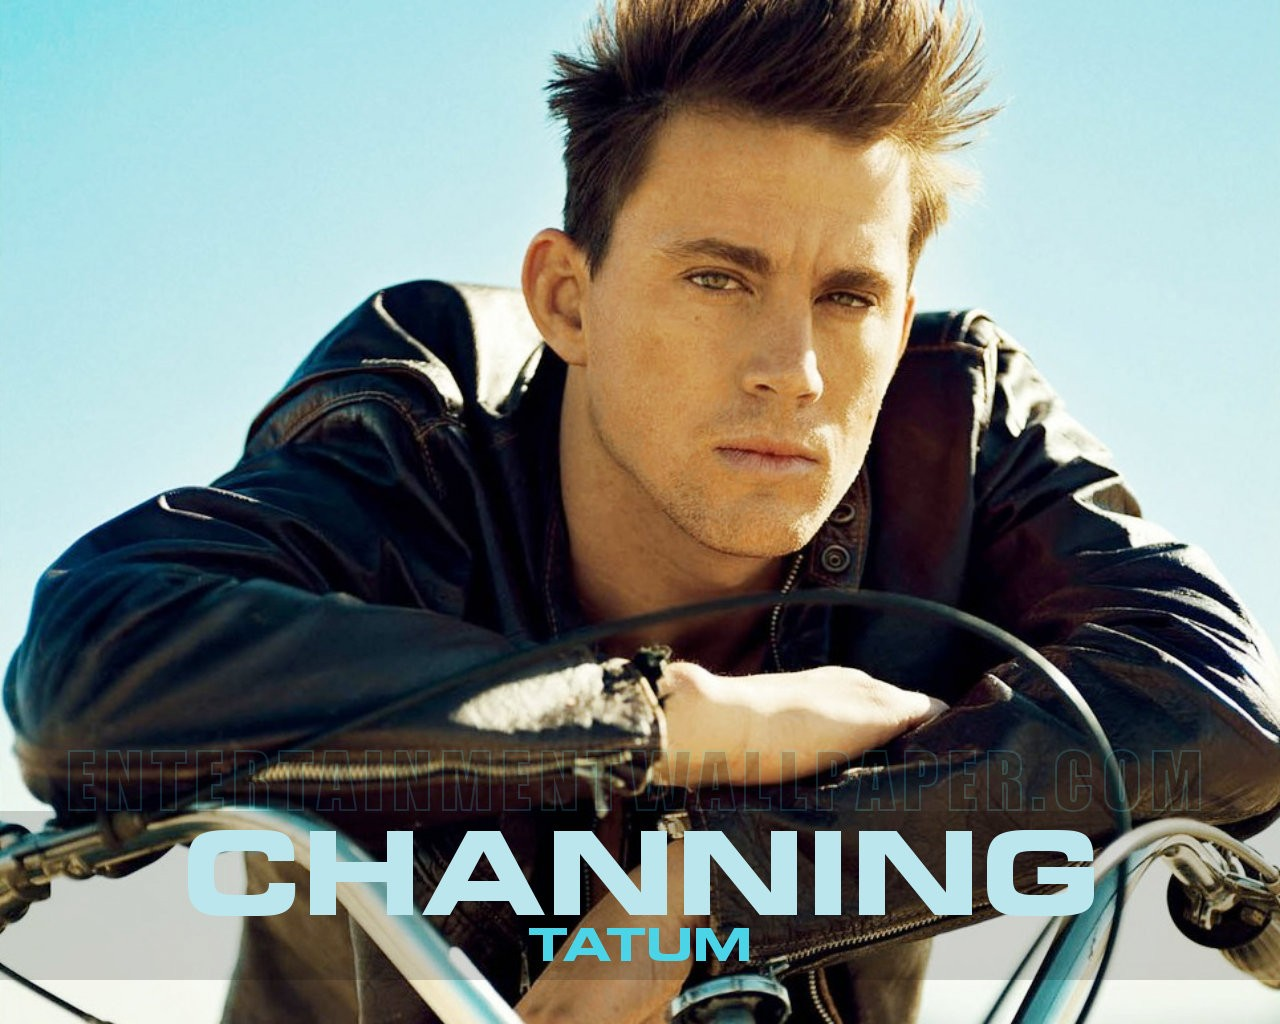 channing tatum hd new wallpapers 2012 free wallpaper